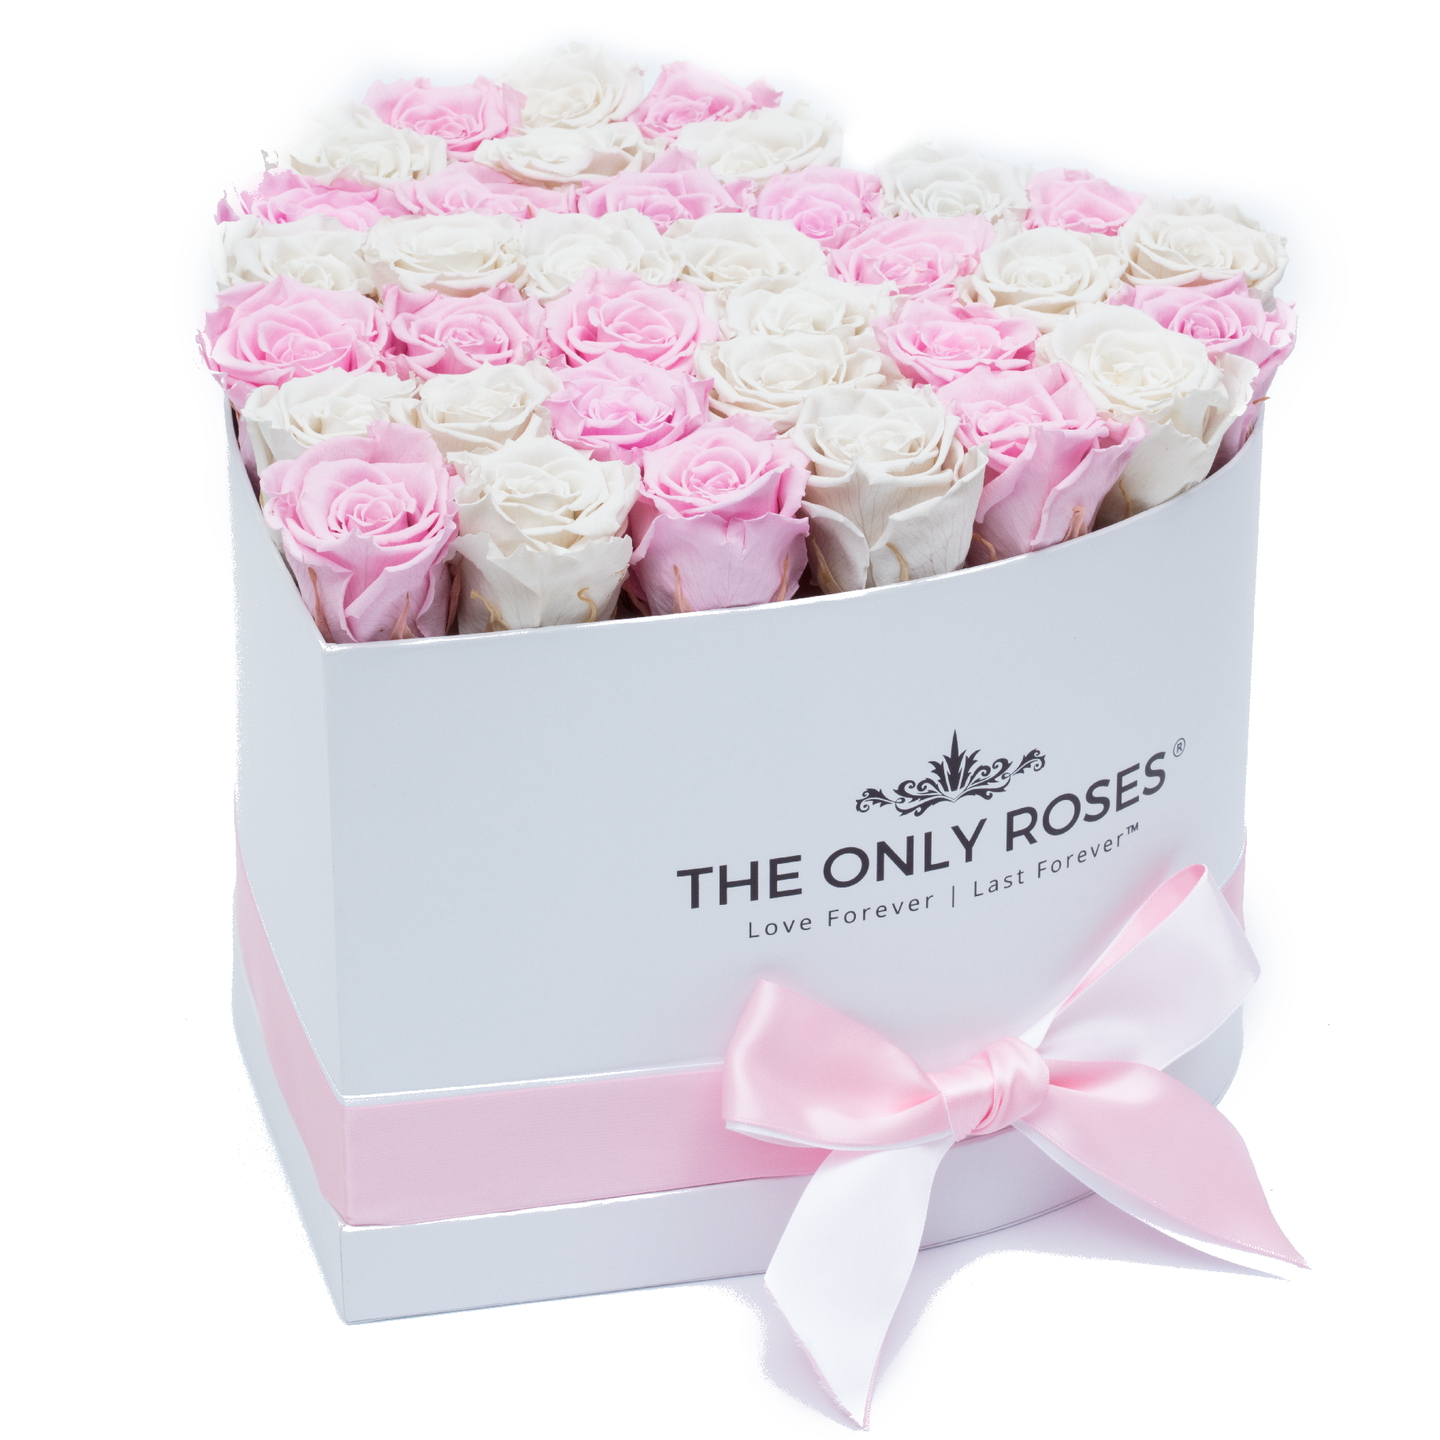 Light Pink and White Preserved Roses | Heart White Huggy Rose Box - The Only Roses